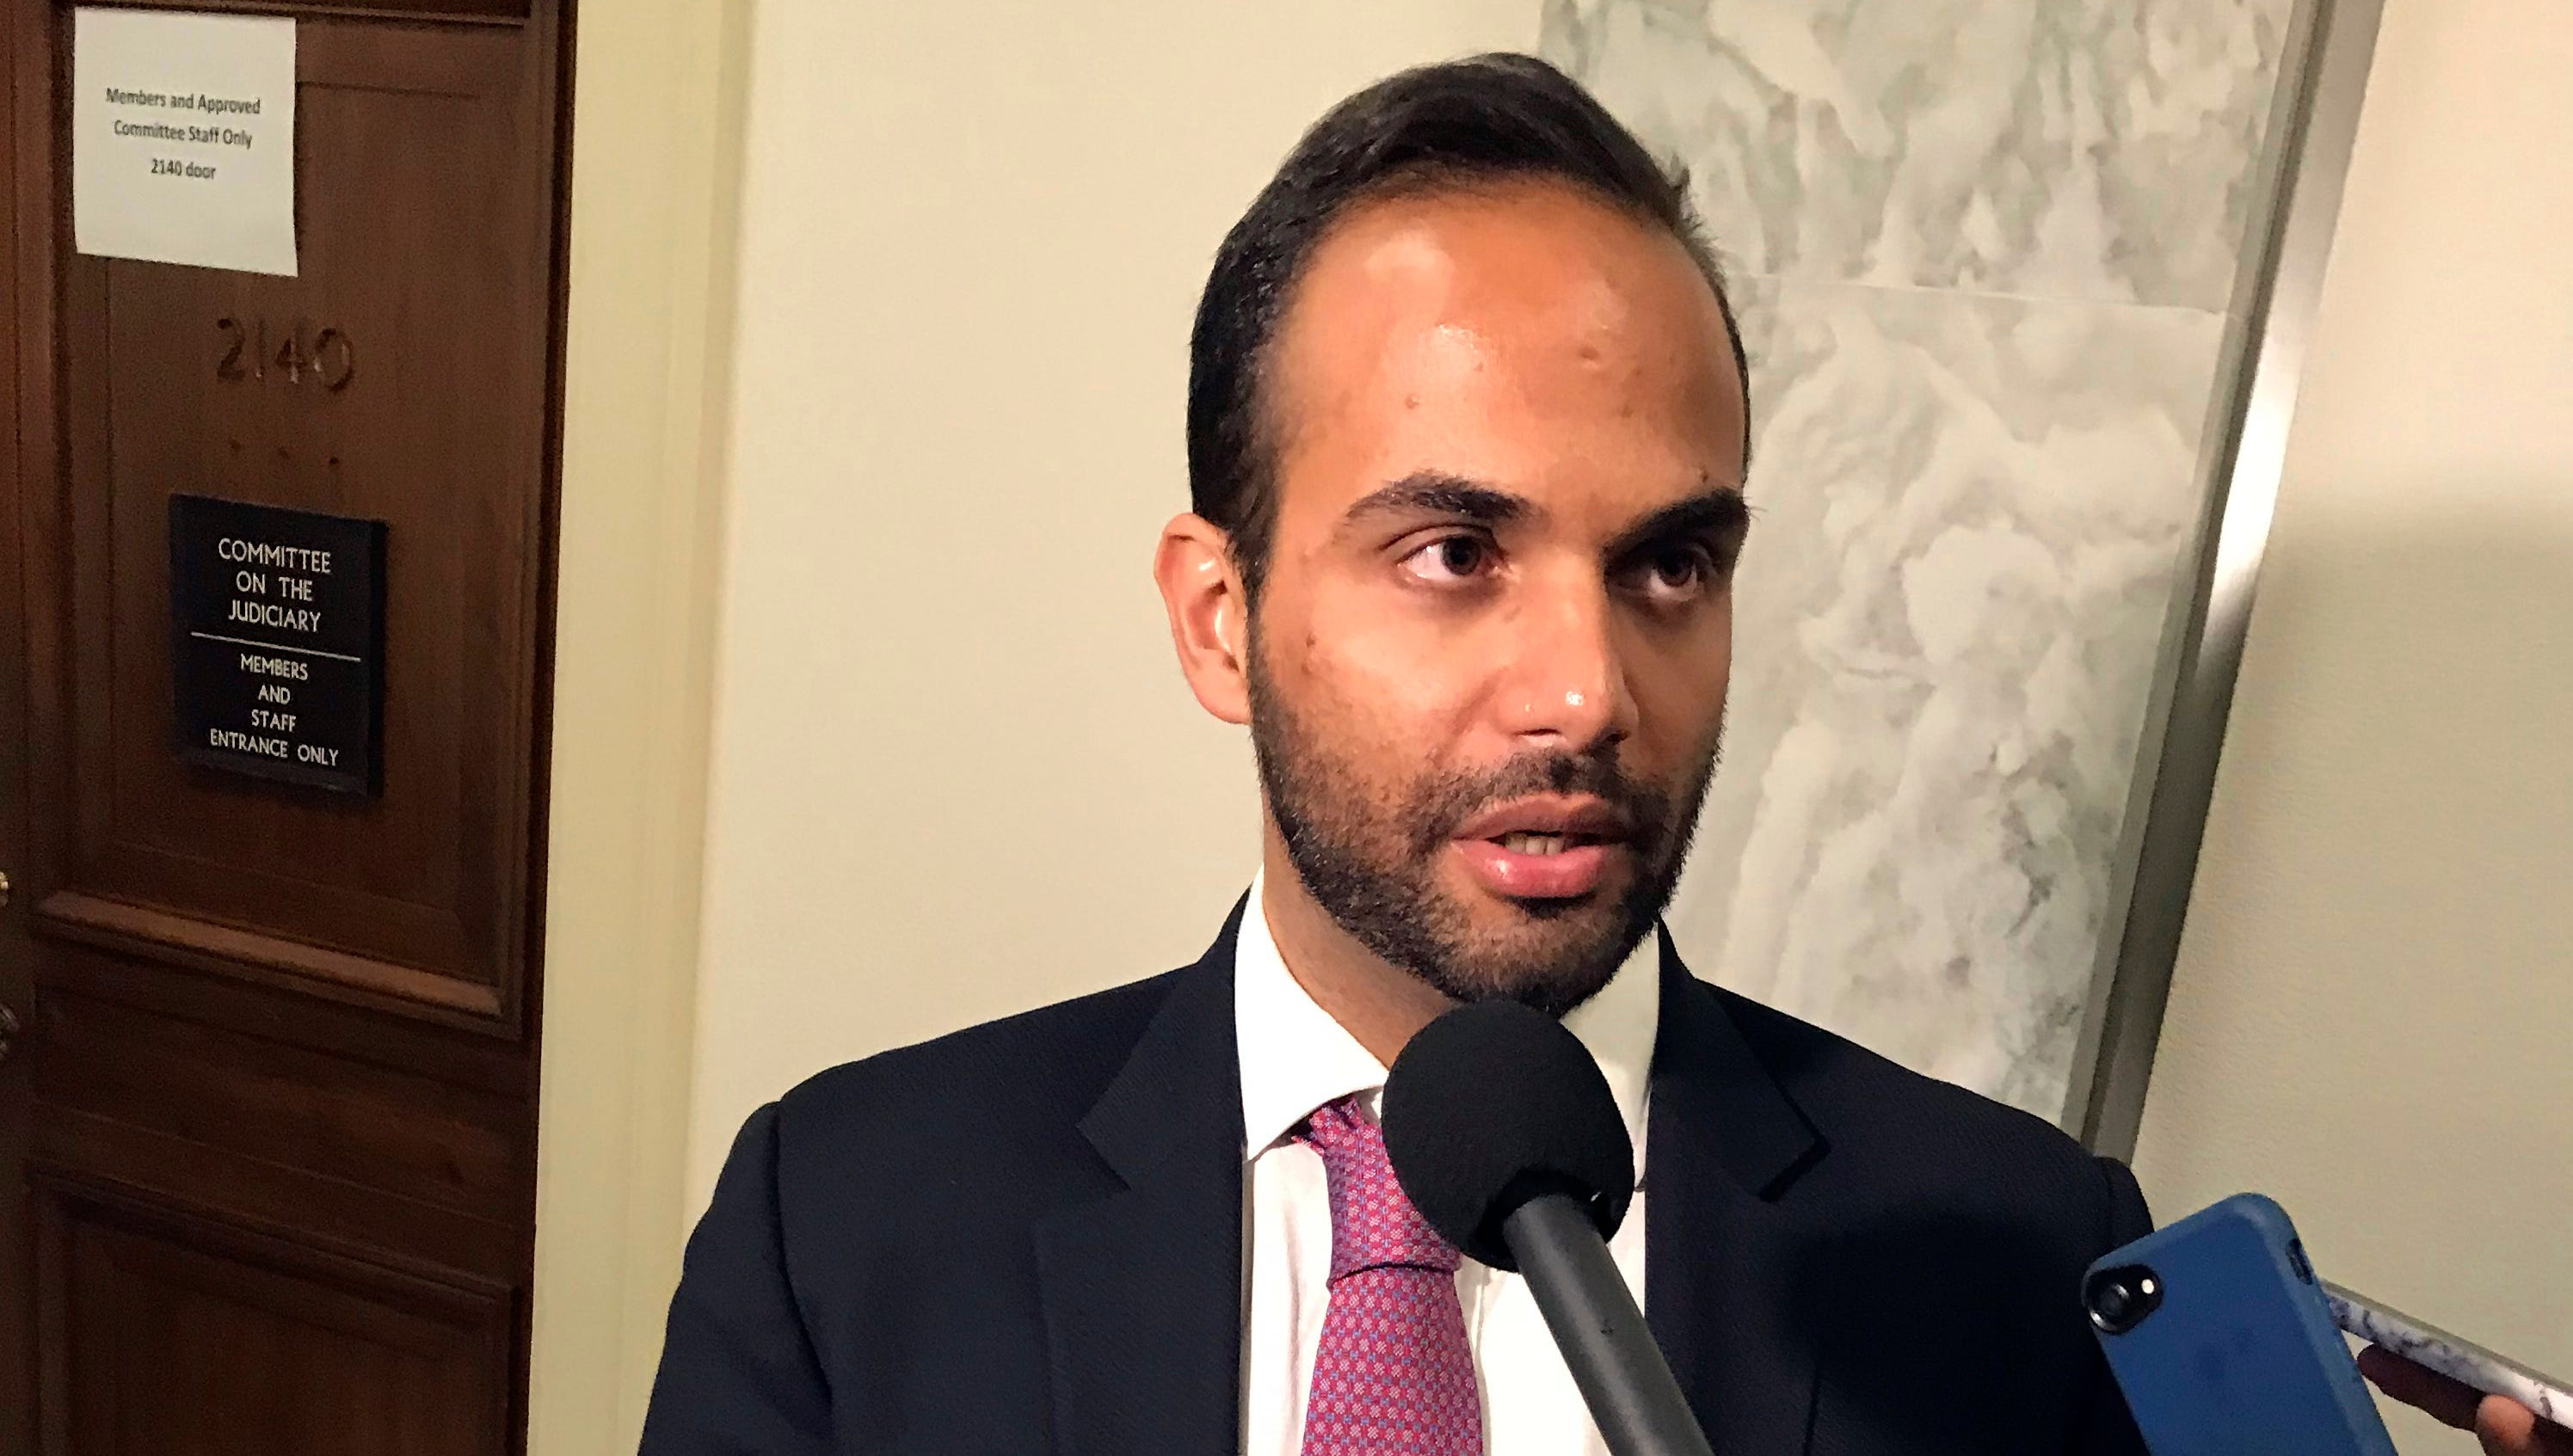 George Papadopoulos, the former Trump campaign adviser who triggered the Russia investigation, talks to reporters after his first appearance before congressional investigators, on Capitol Hill in Washington, Oct. 25, 2018.